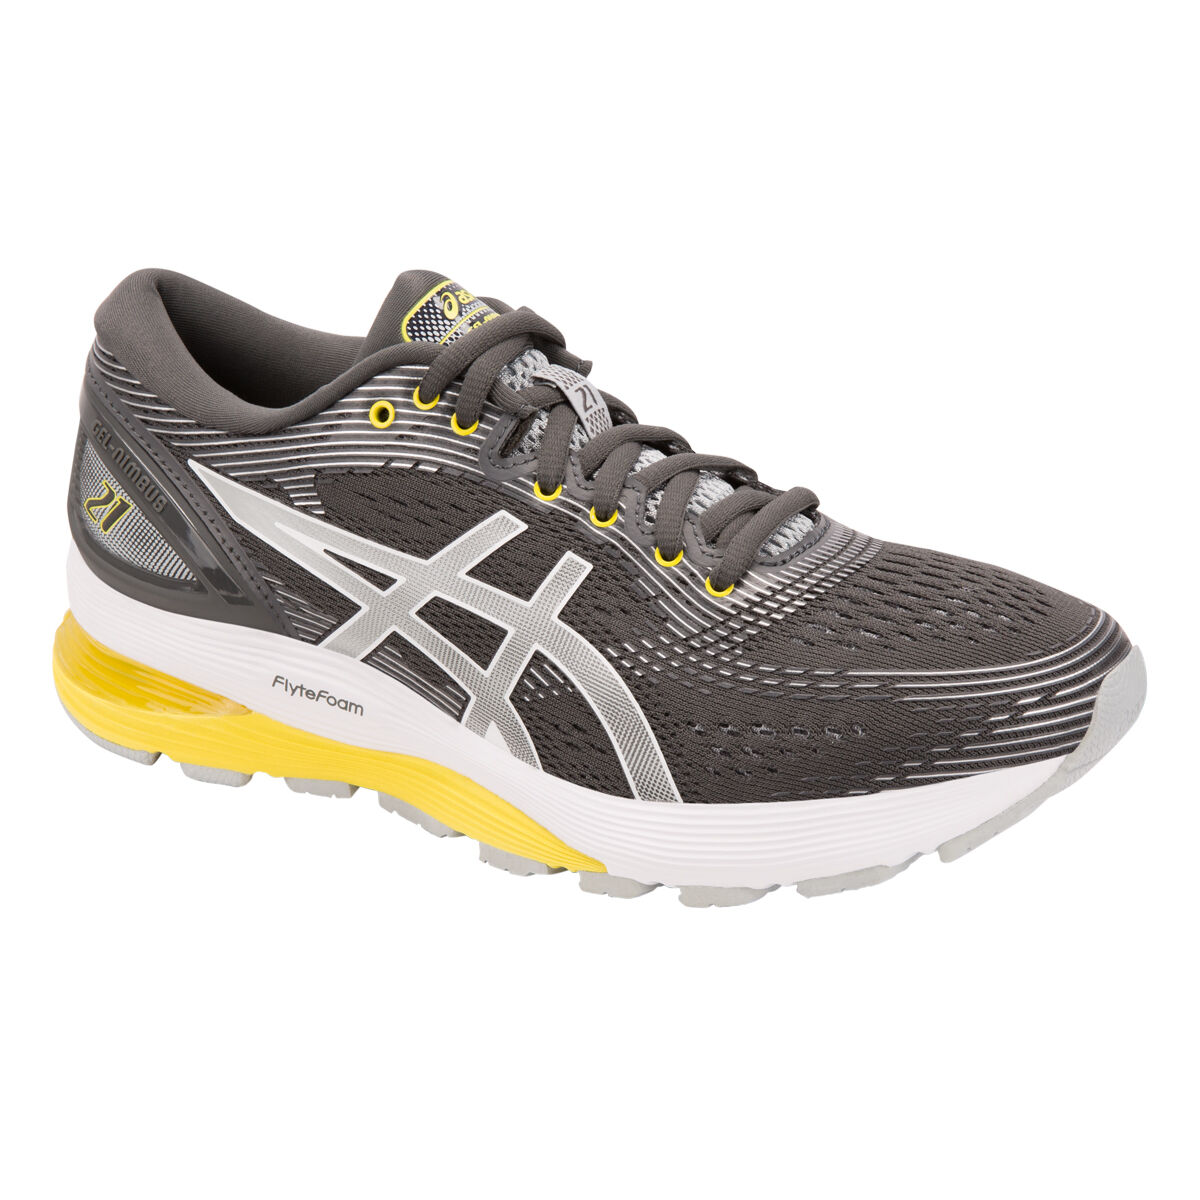 rebel sport asics kayano 25